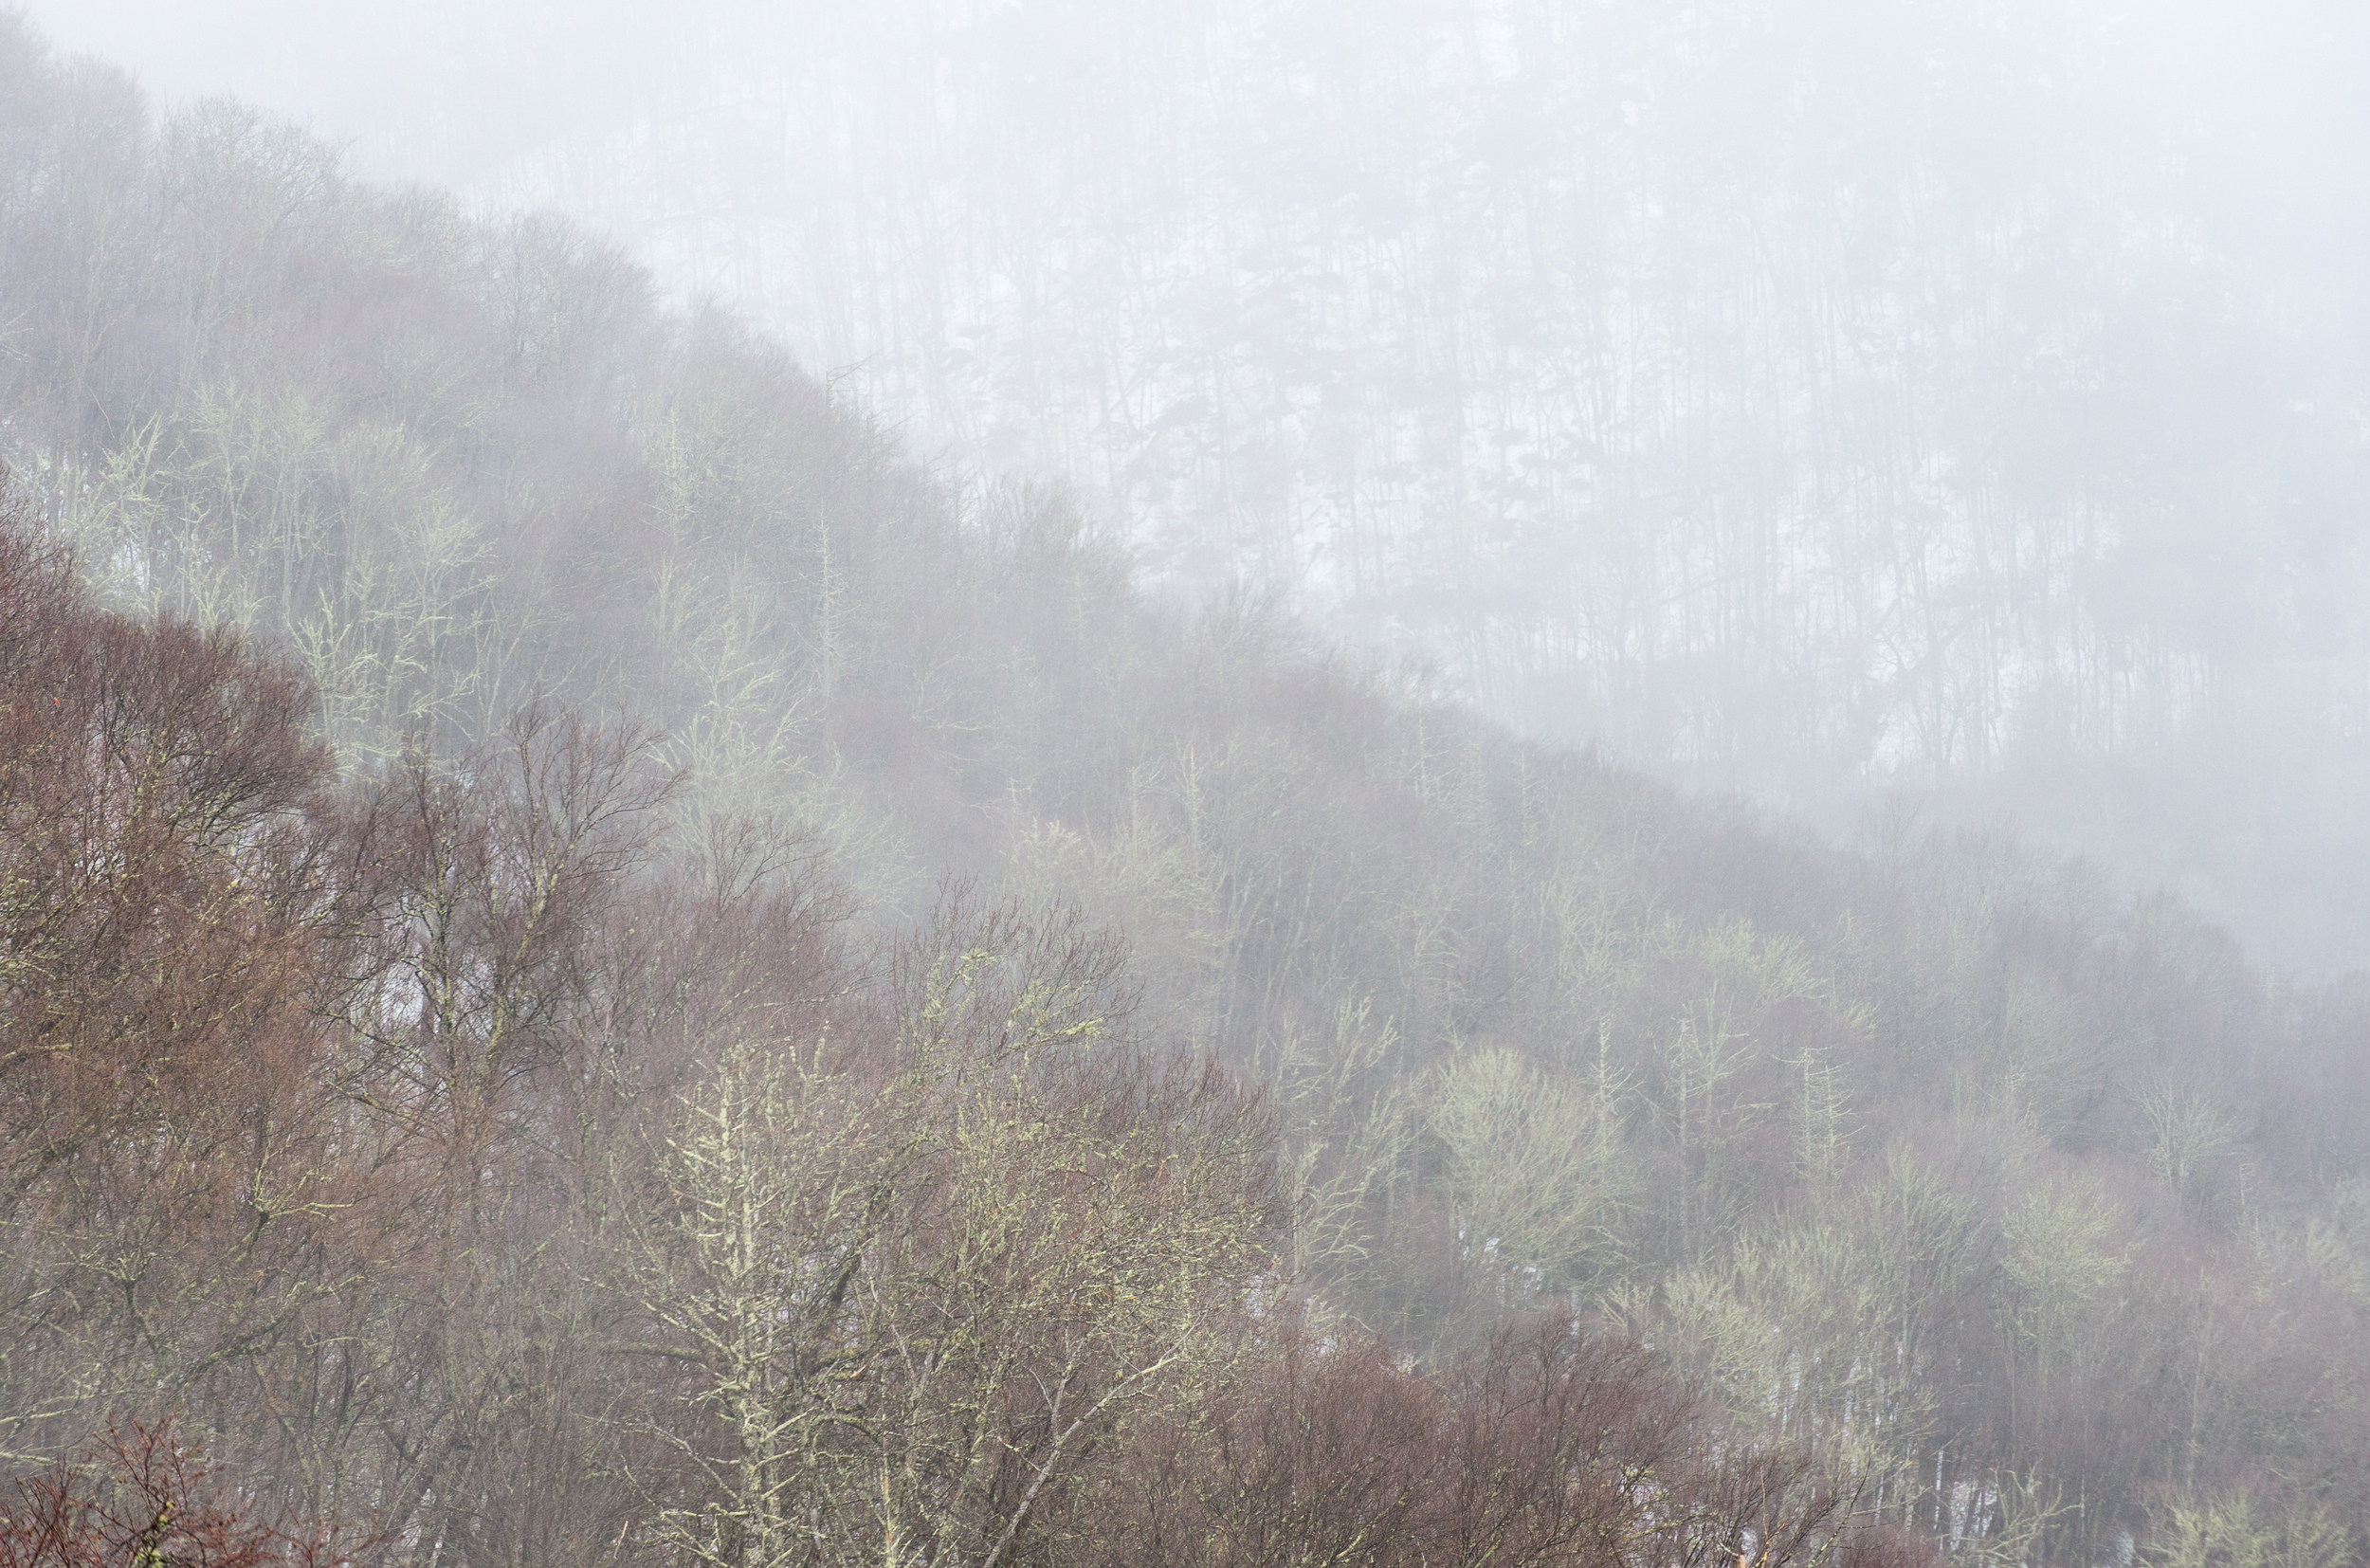 While the clouds blocked any chance of a view from the Newfound Gap overlook, just down the road from the summit there were short glimpses of the mountainside. 1/400 @ f9, ISO 400.